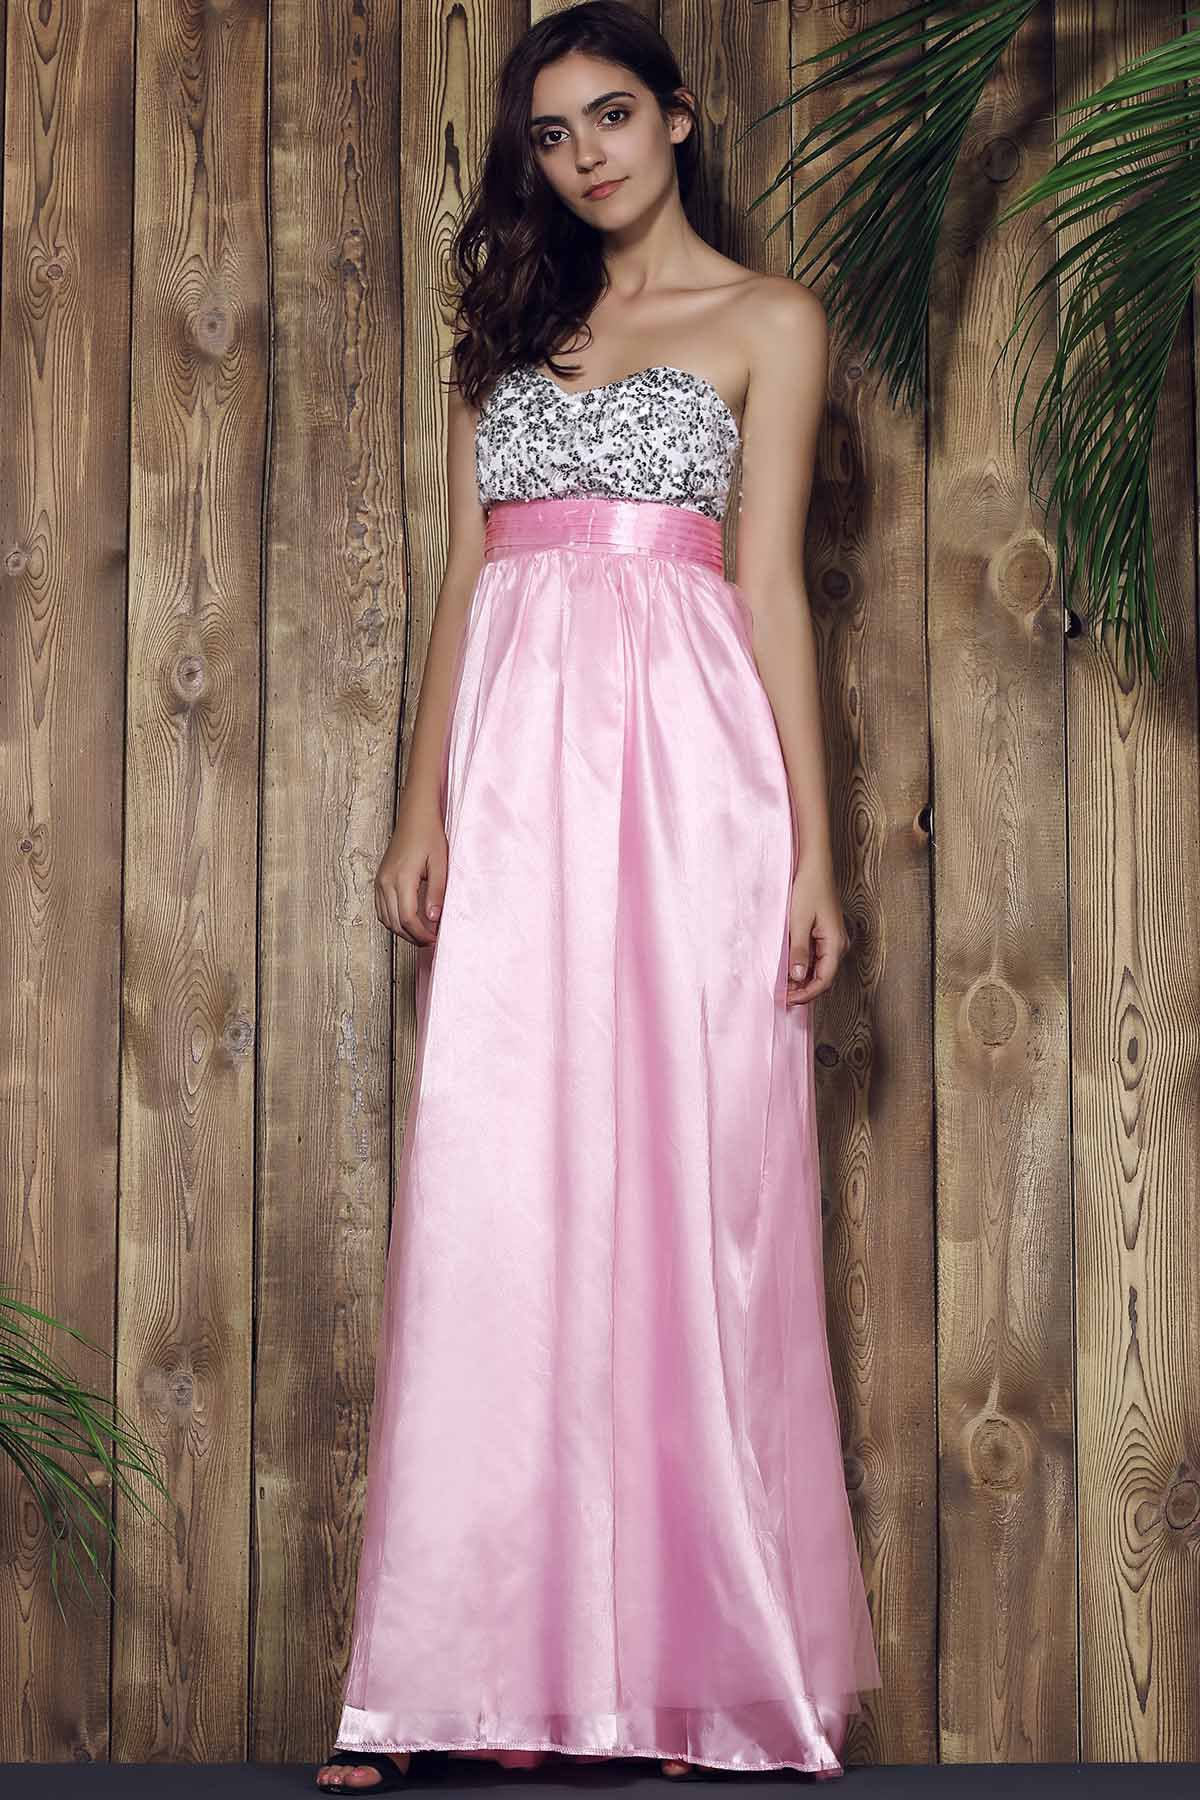 Elegant Sleeveless Strapless Spliced Sequins Embellished Women's Prom Dress - PINK S